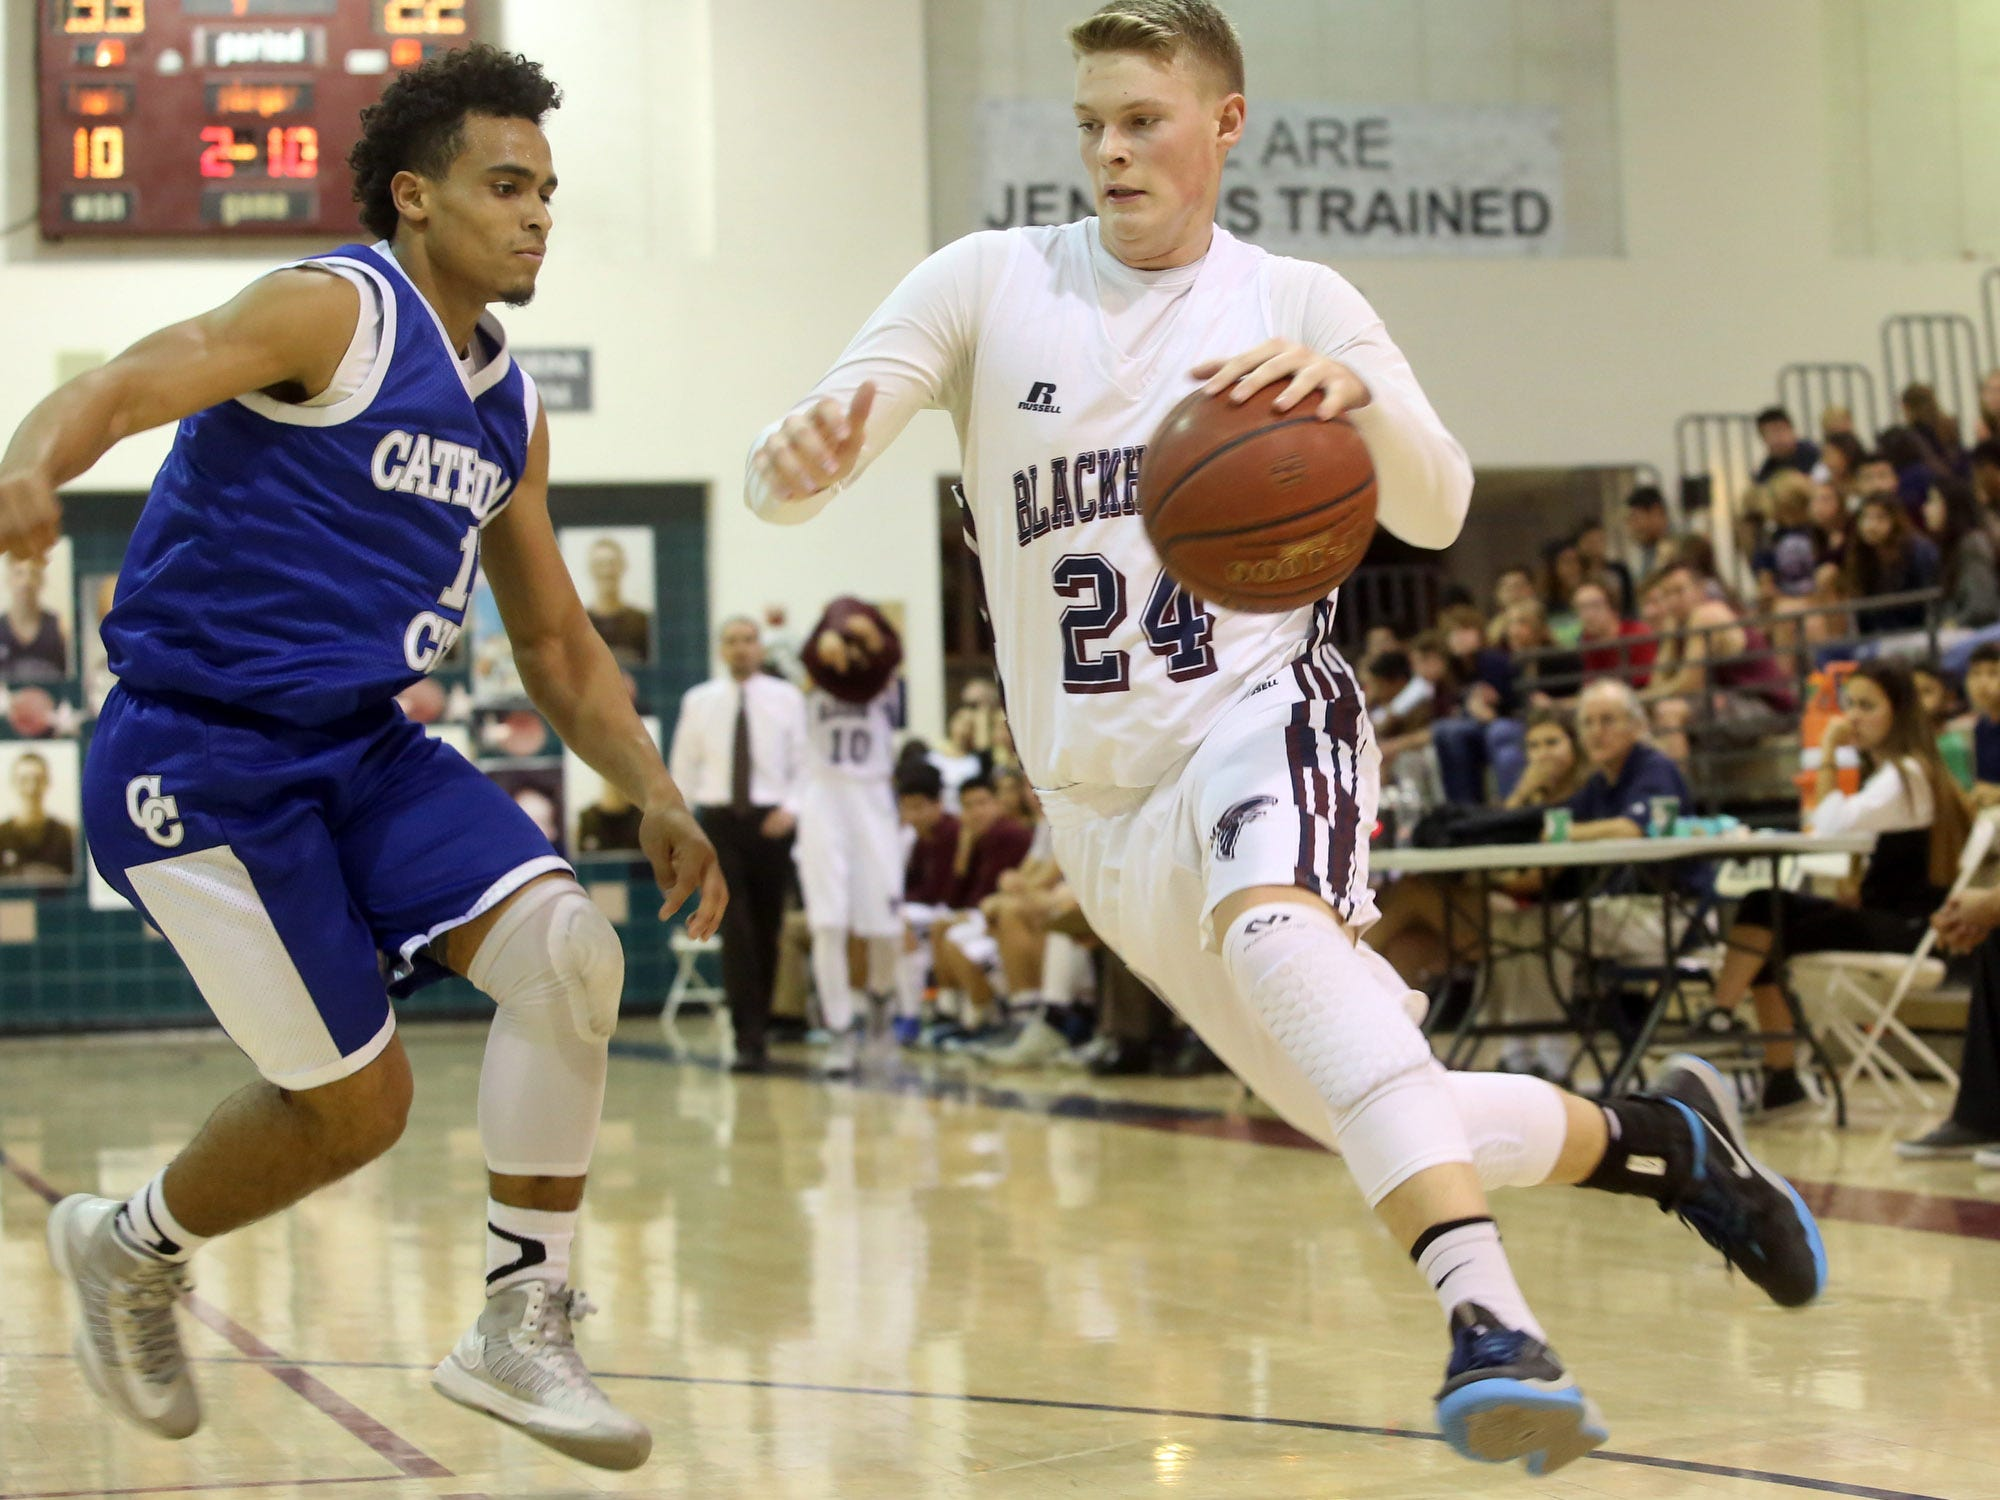 Jared Broadhead of La Quinta (24, white) works around defensive pressure from Cathedral City's Orlando Wallace as the Blackhawks host the Lions on Tuesday night in La Quinta.